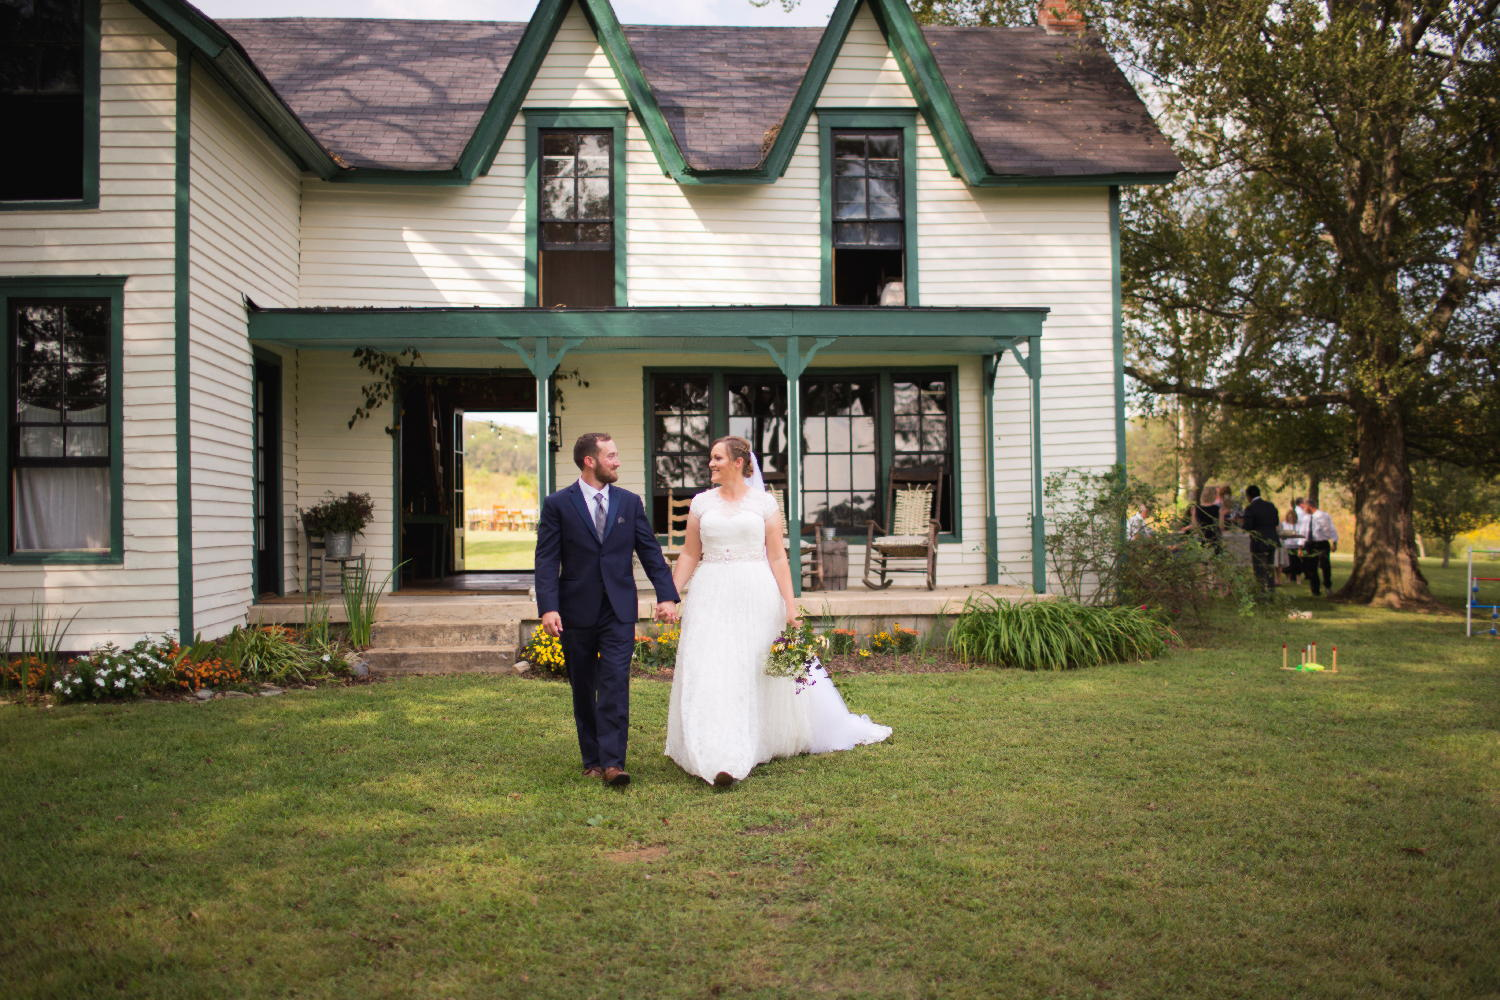 brideandgroom in front of historic house